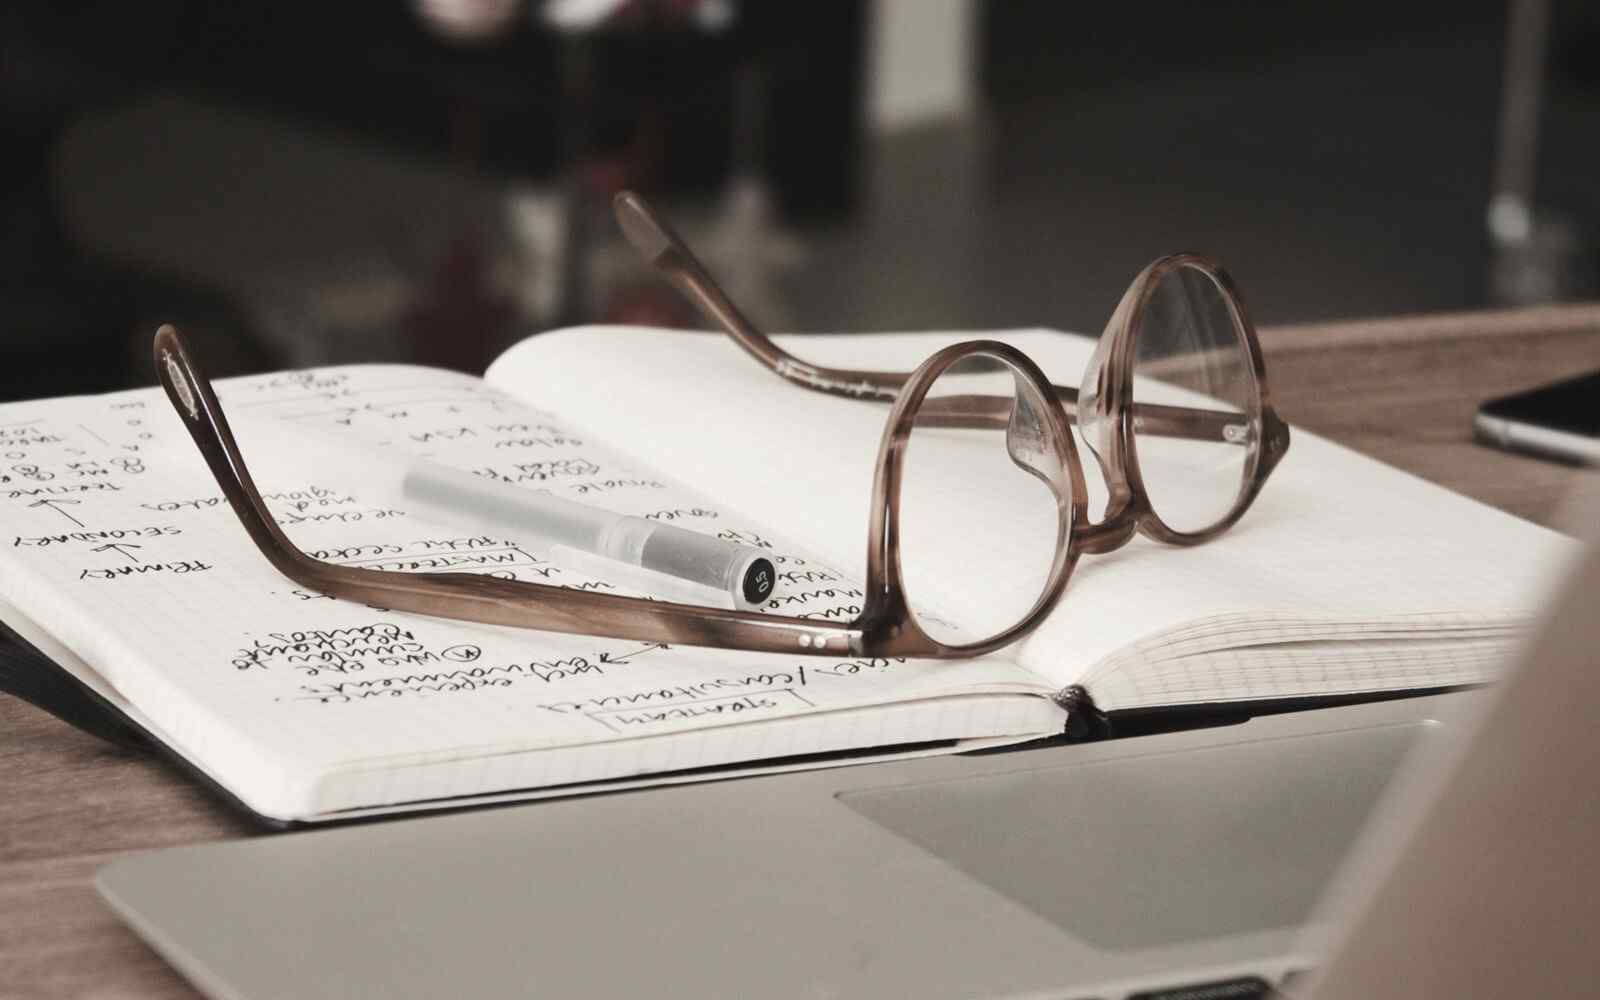 Open notebook with glasses on top